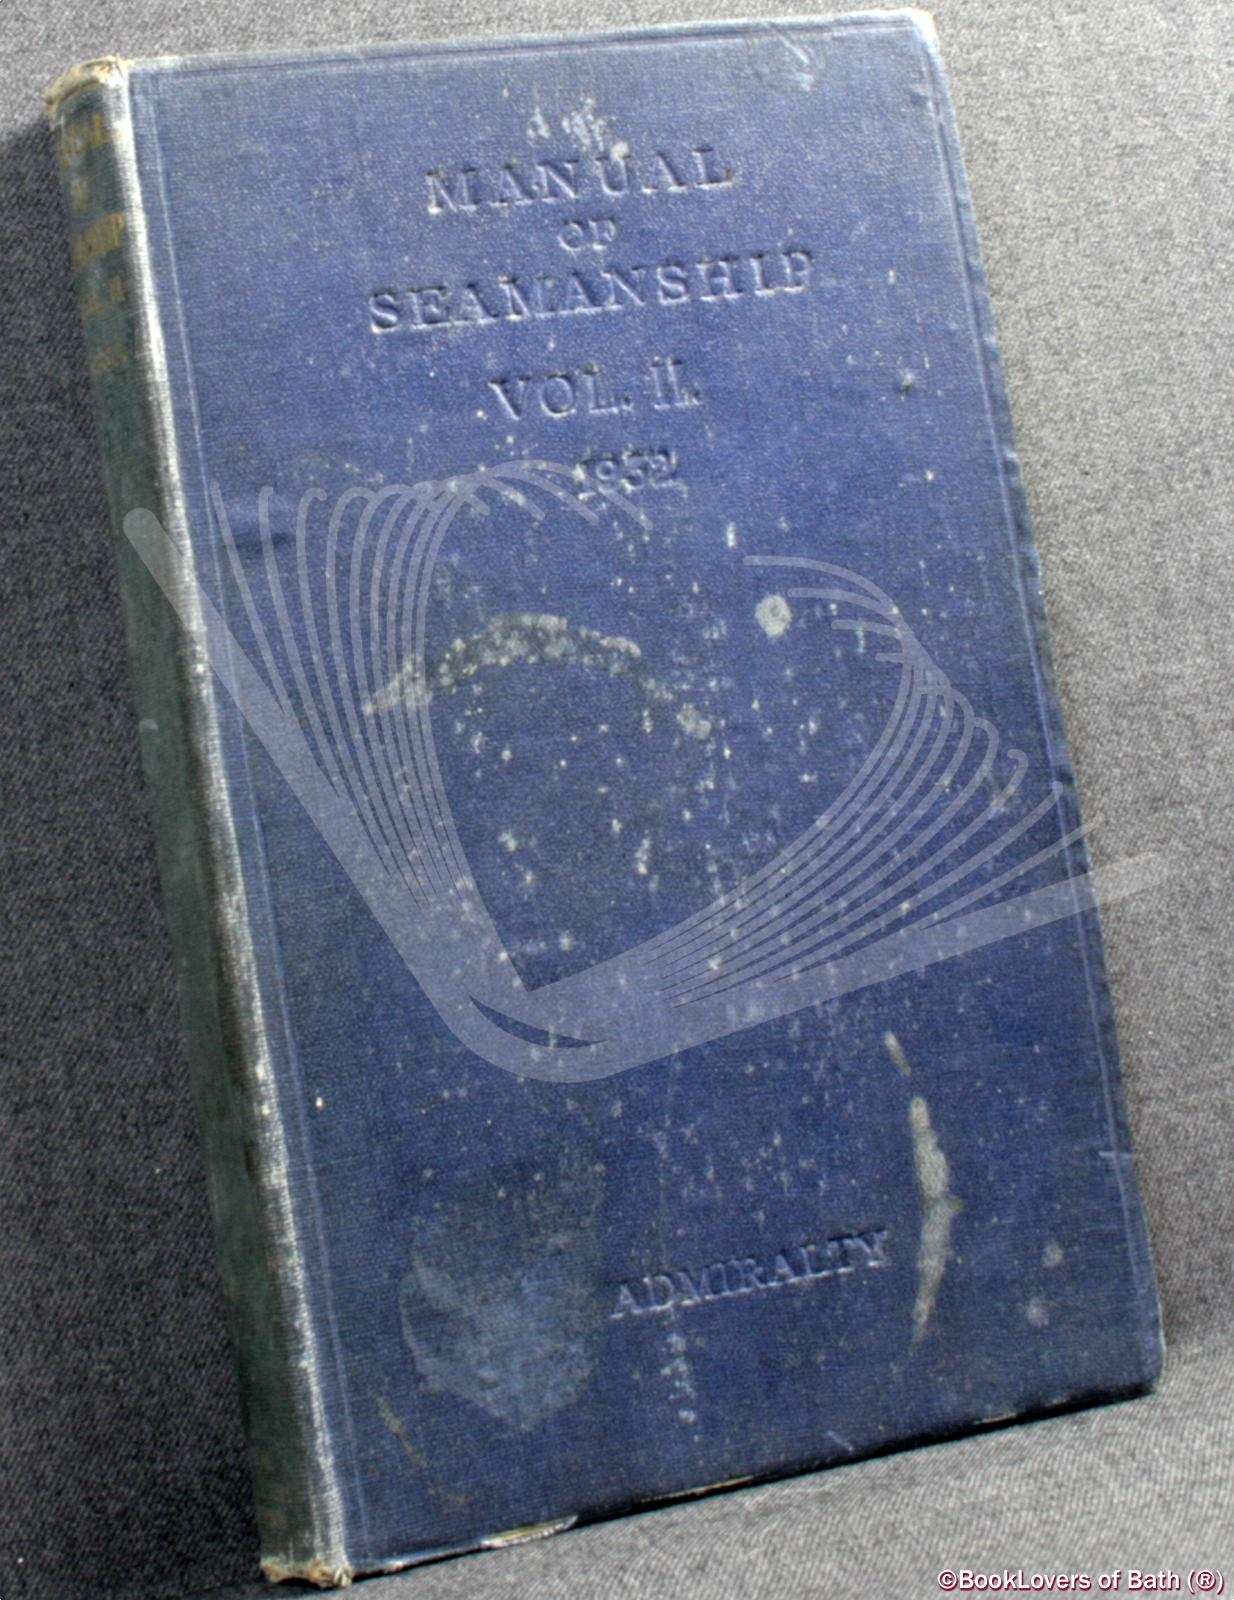 B. R. 68 Manual of Seamanship Volume II 1932 - Lords Commissioners of the Admiralty